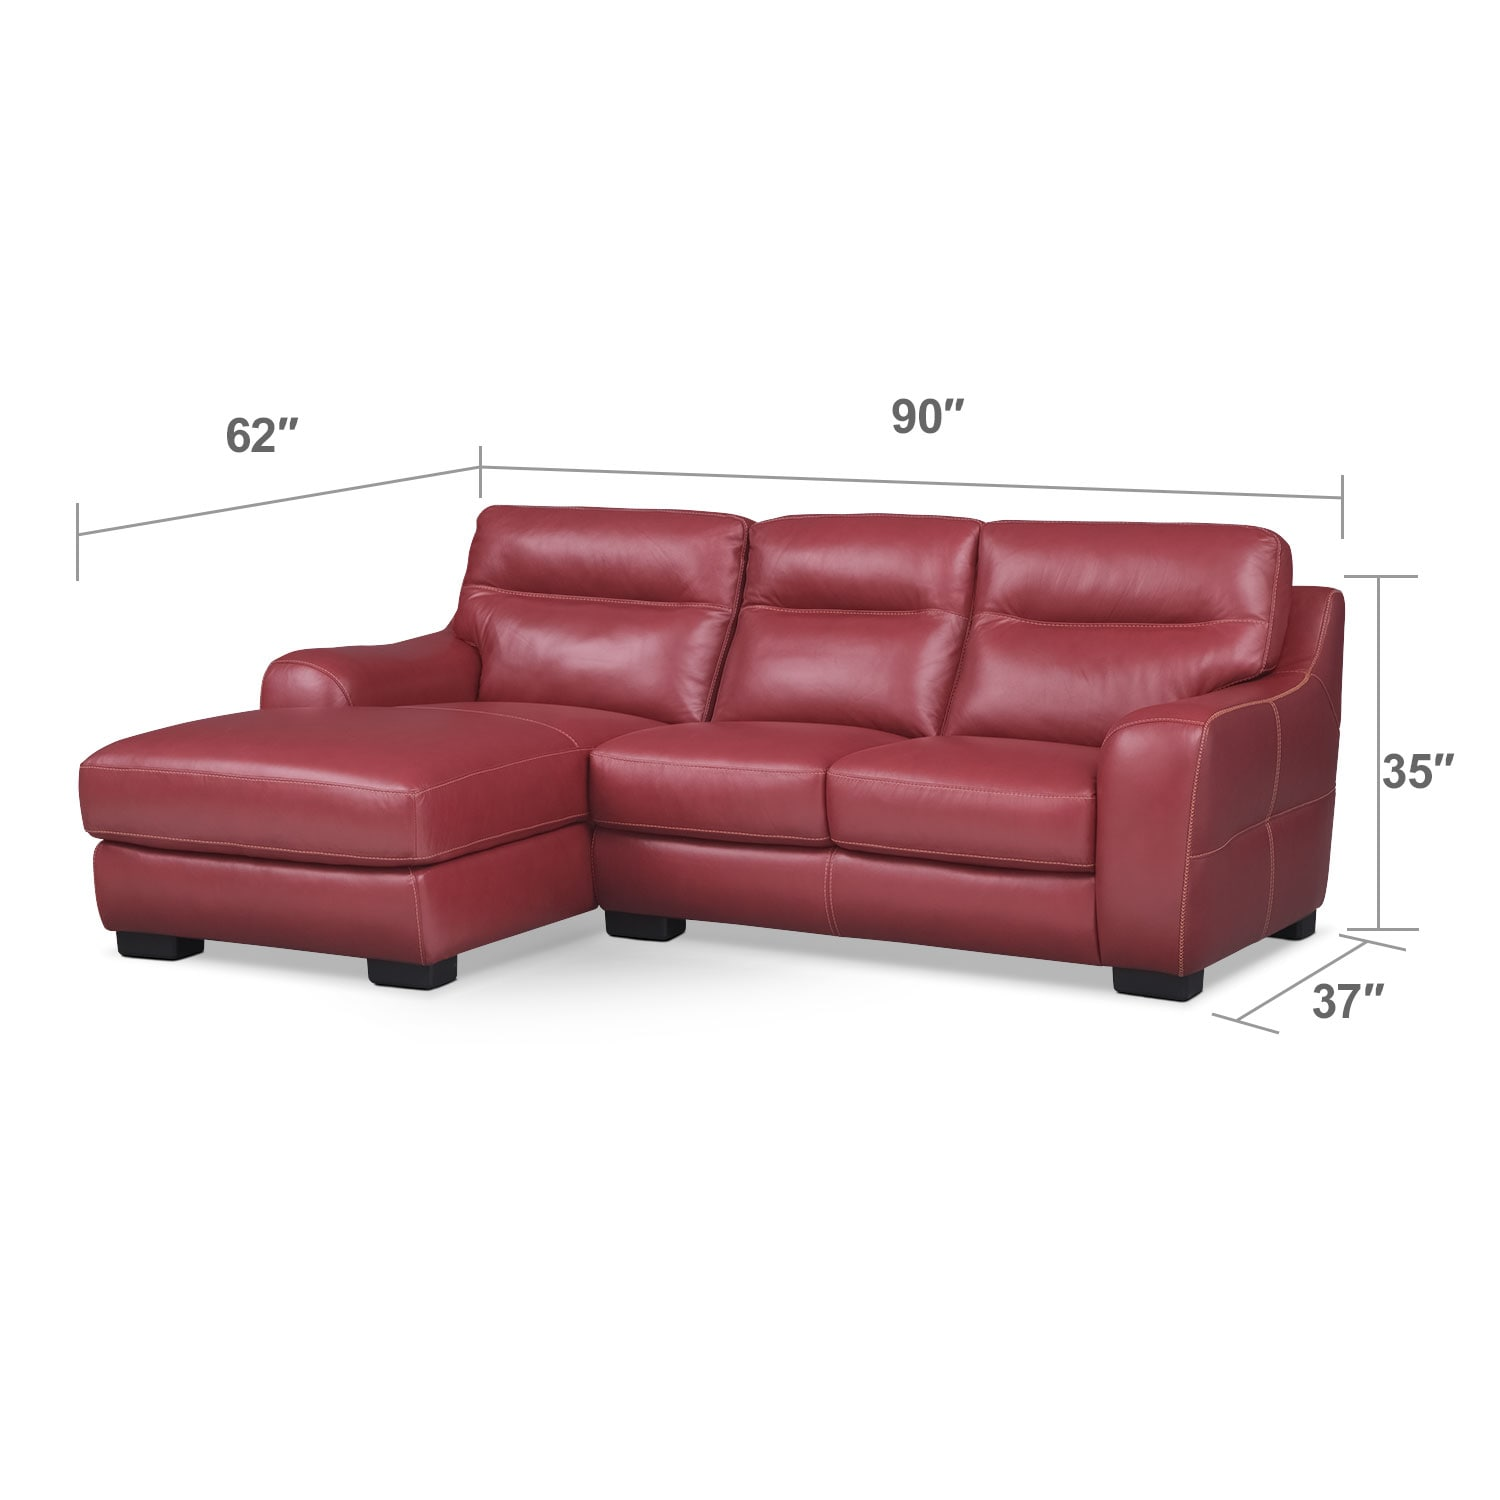 Living Room Furniture - Rocco 2-Piece Left-Facing Sectional - Red